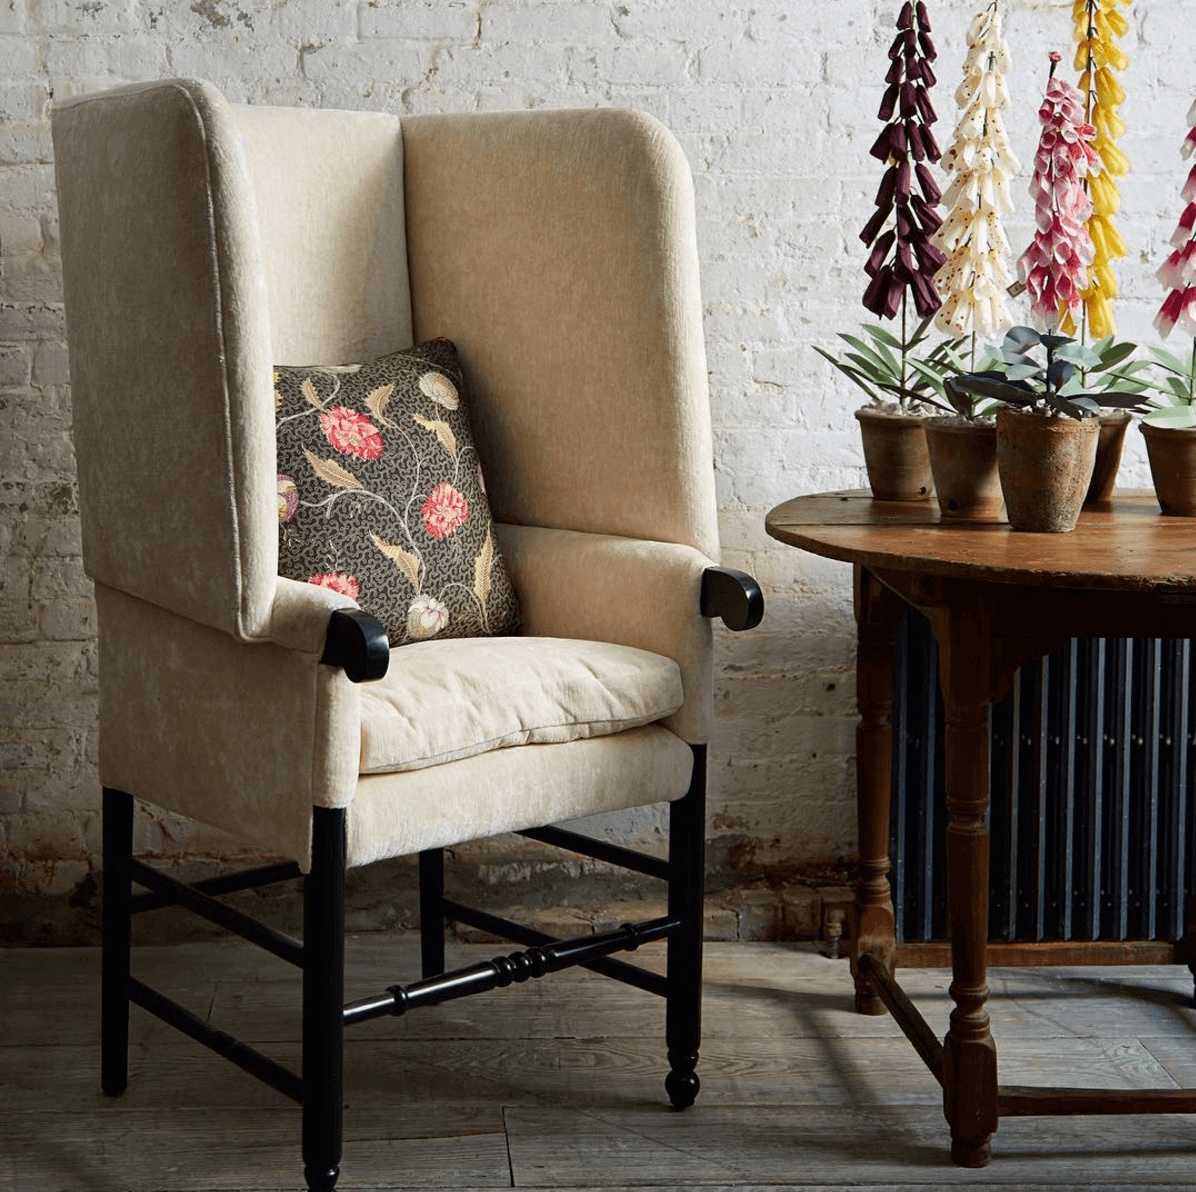 Shop Home and Kids John Derian Company Chair